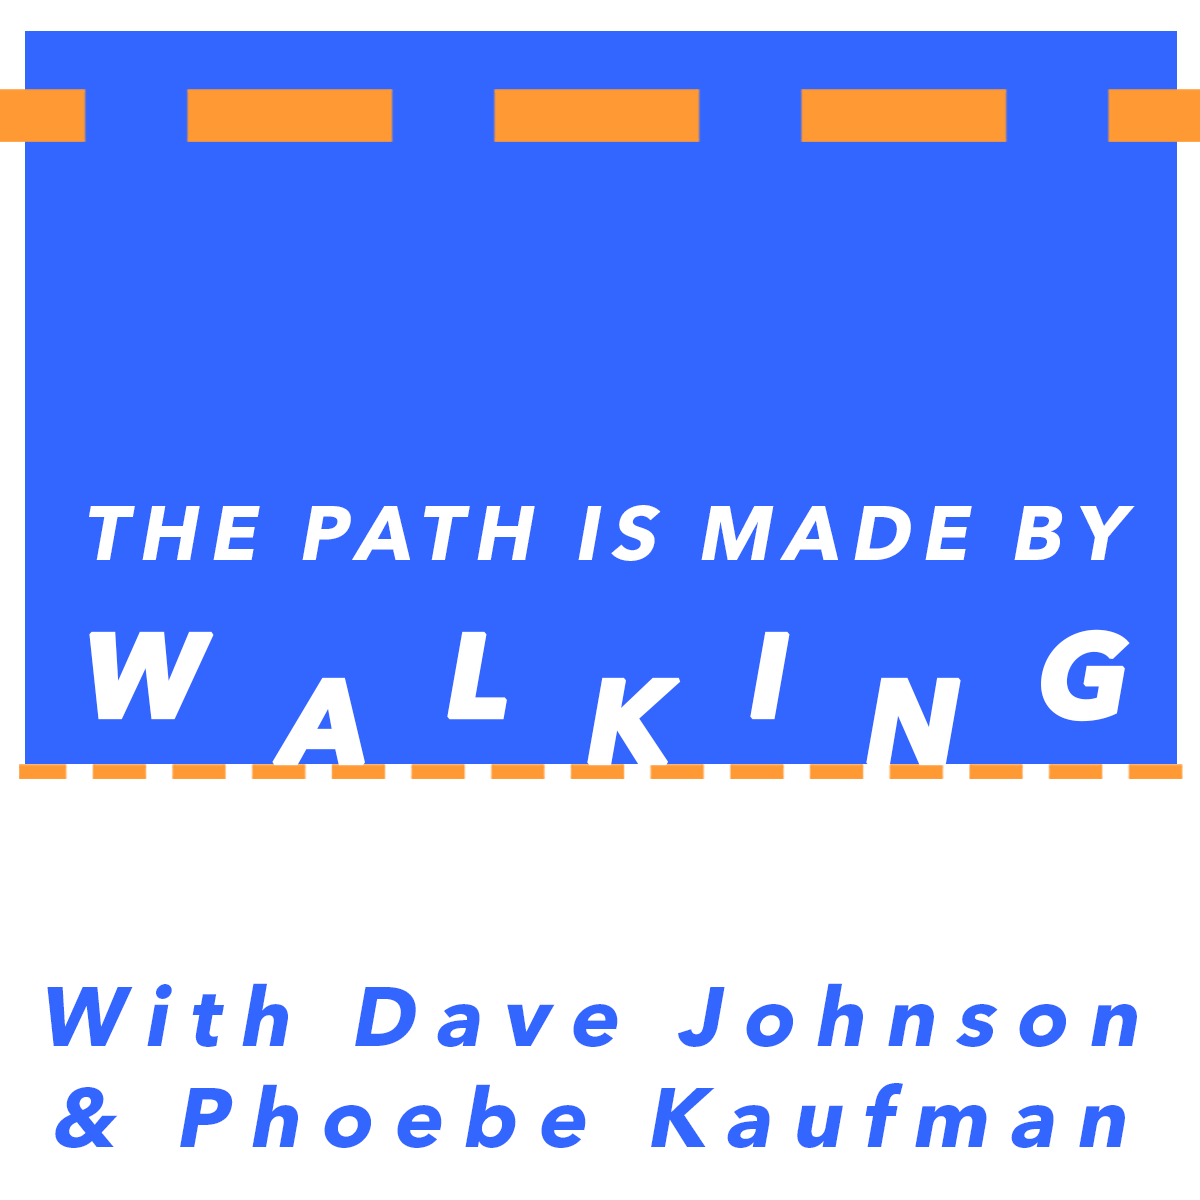 The Path is made by walking!